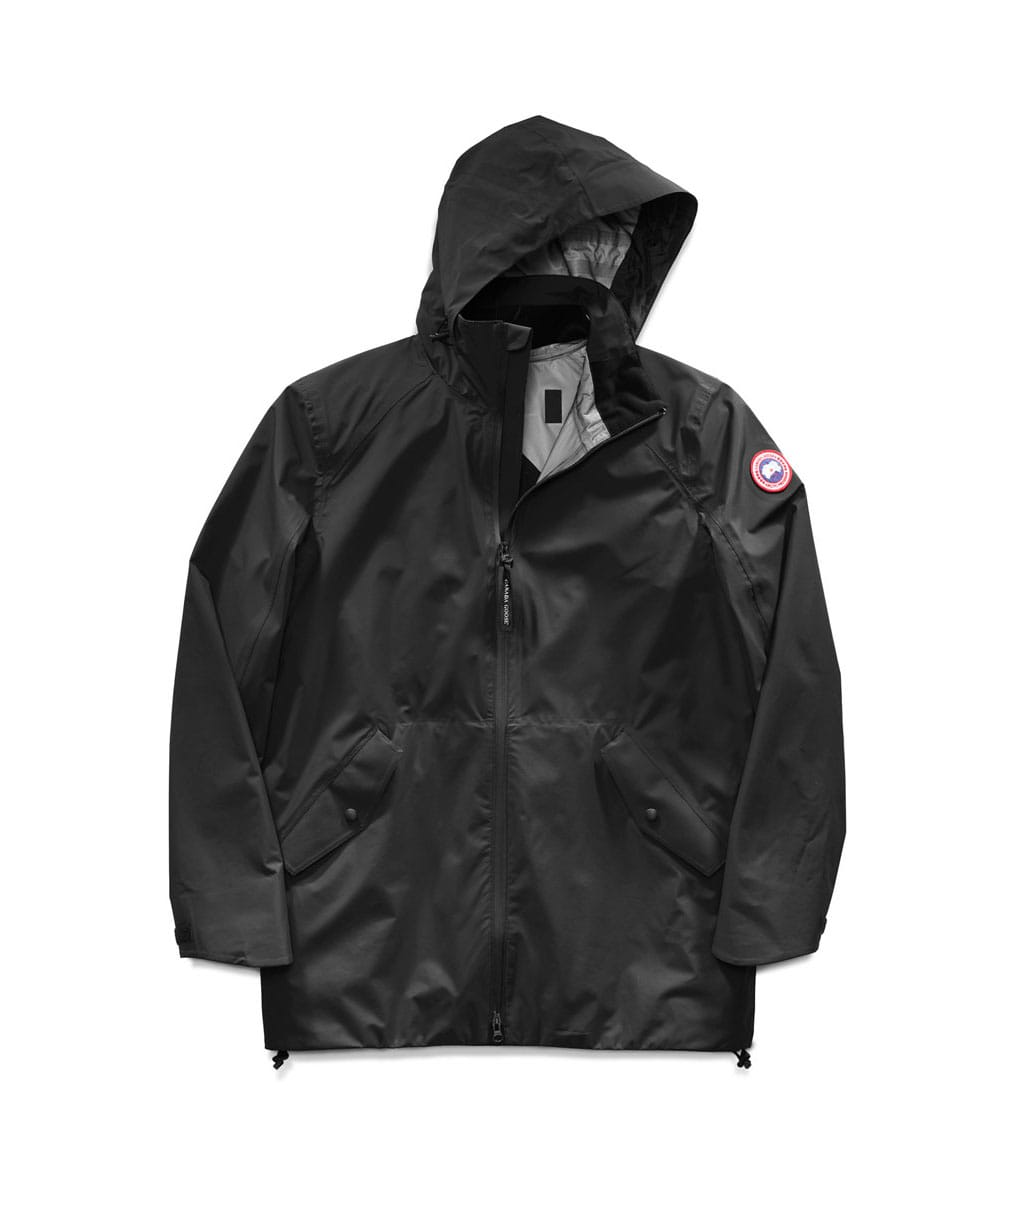 RIVERHEAD JACKET